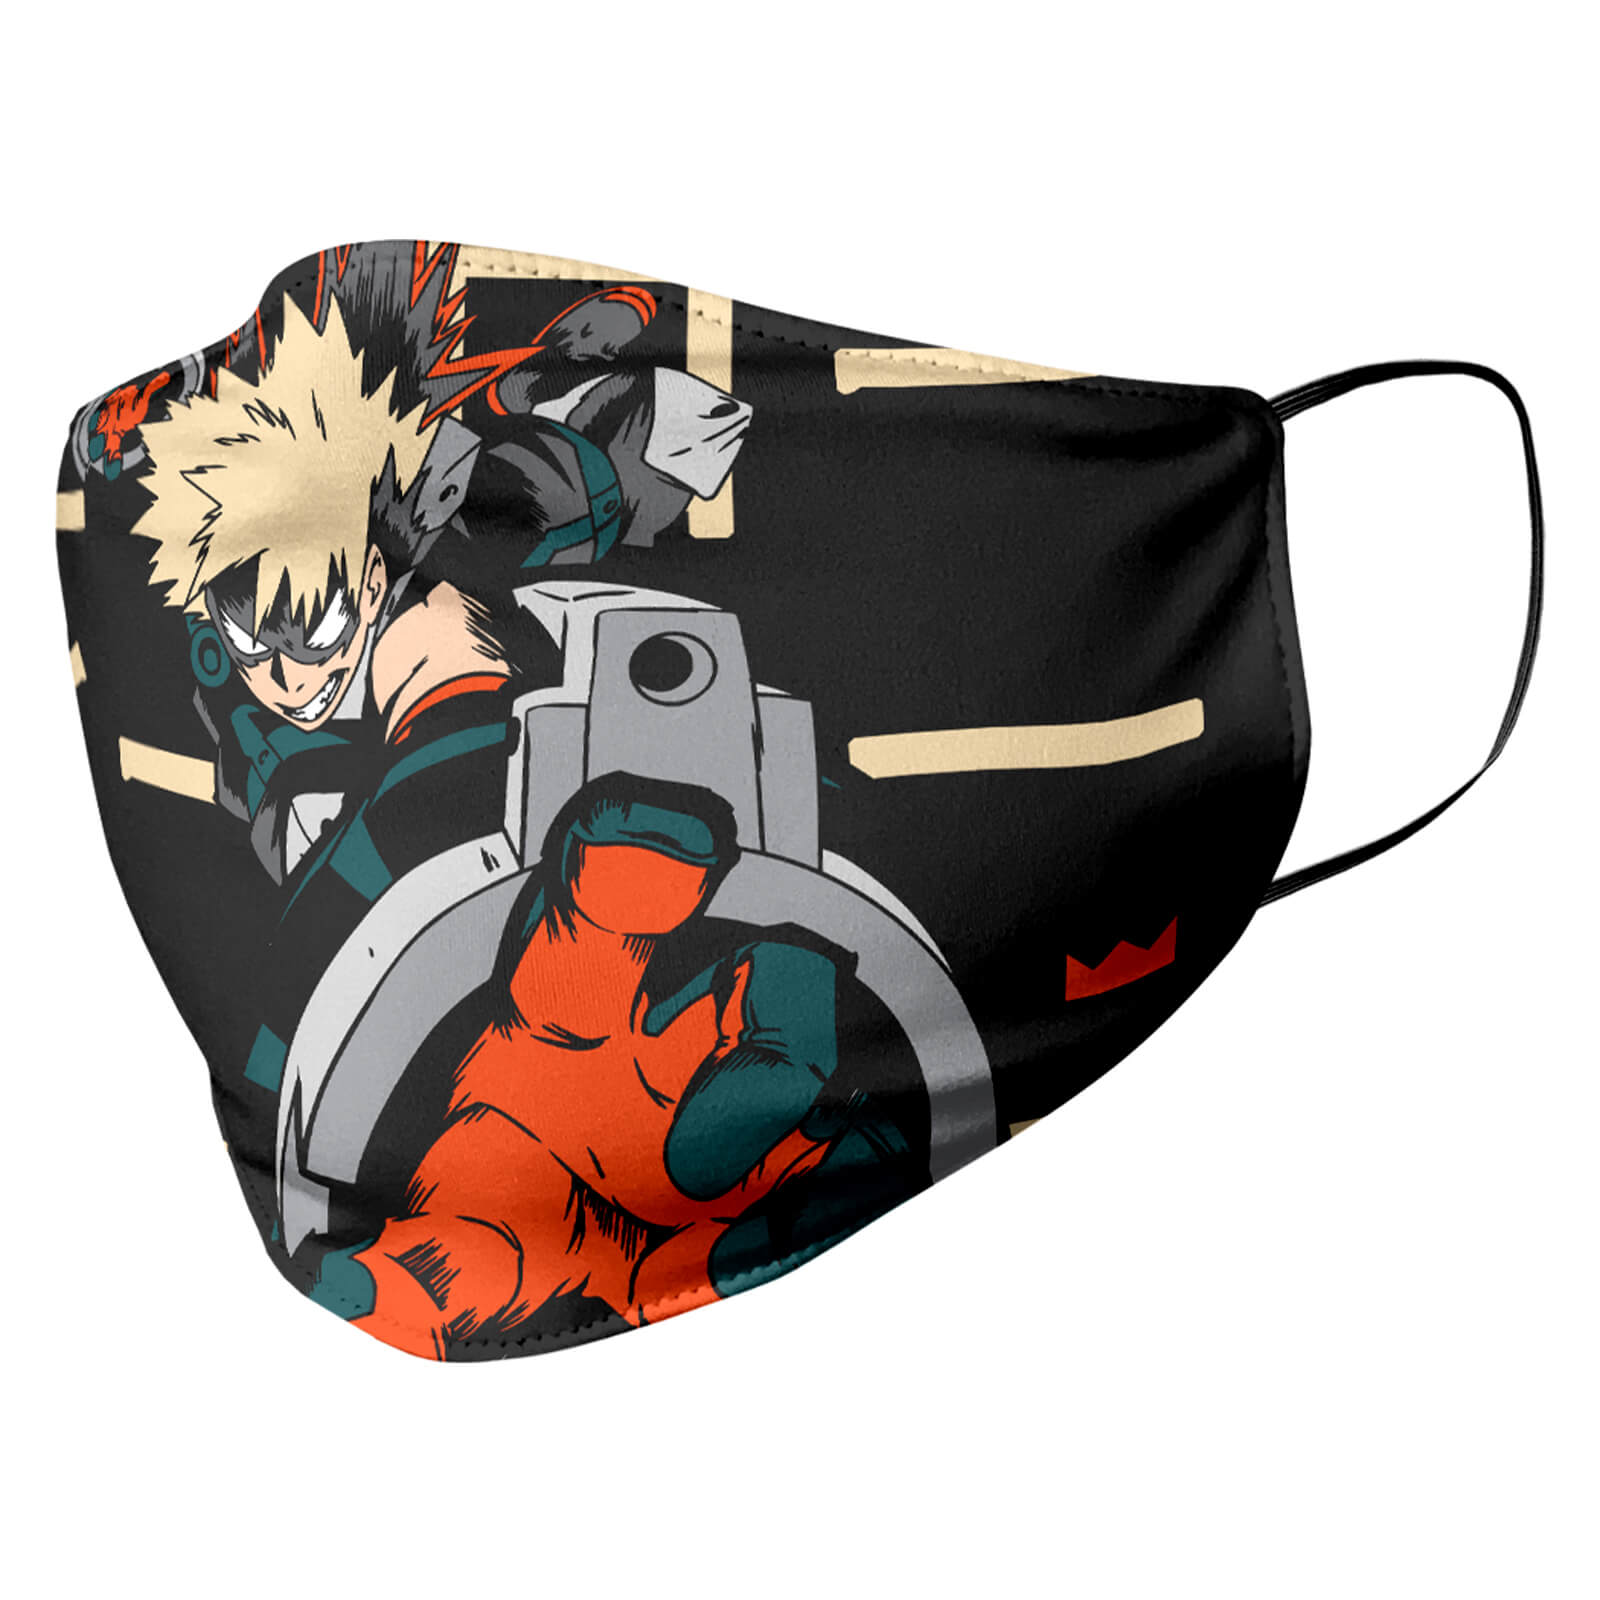 Katsuki Bakugo War Ready (OG) Face Mask